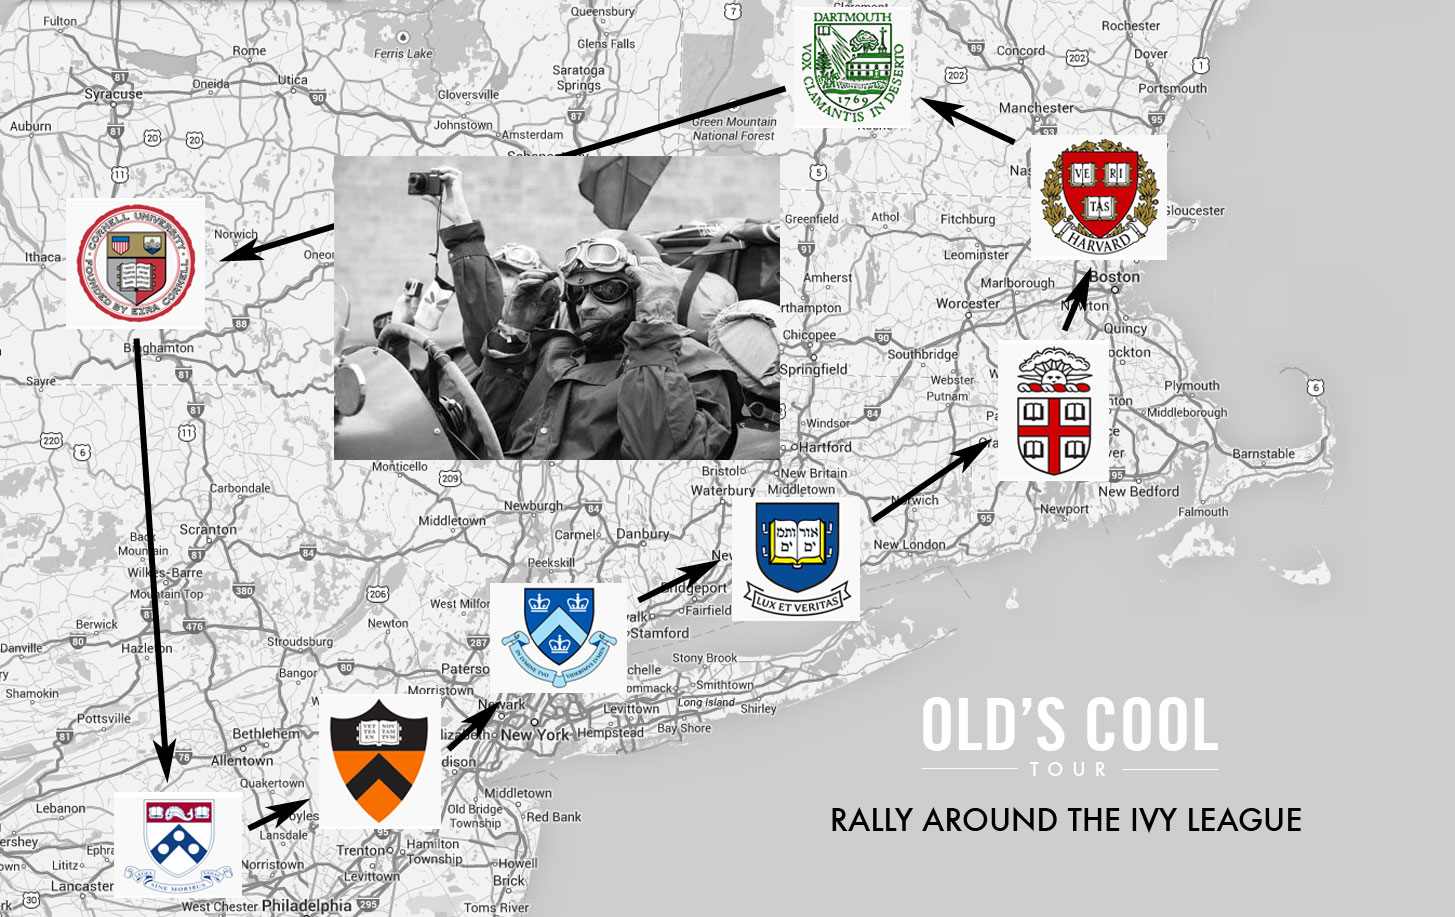 The Old\'s Cool Tour Is Planned For This September |